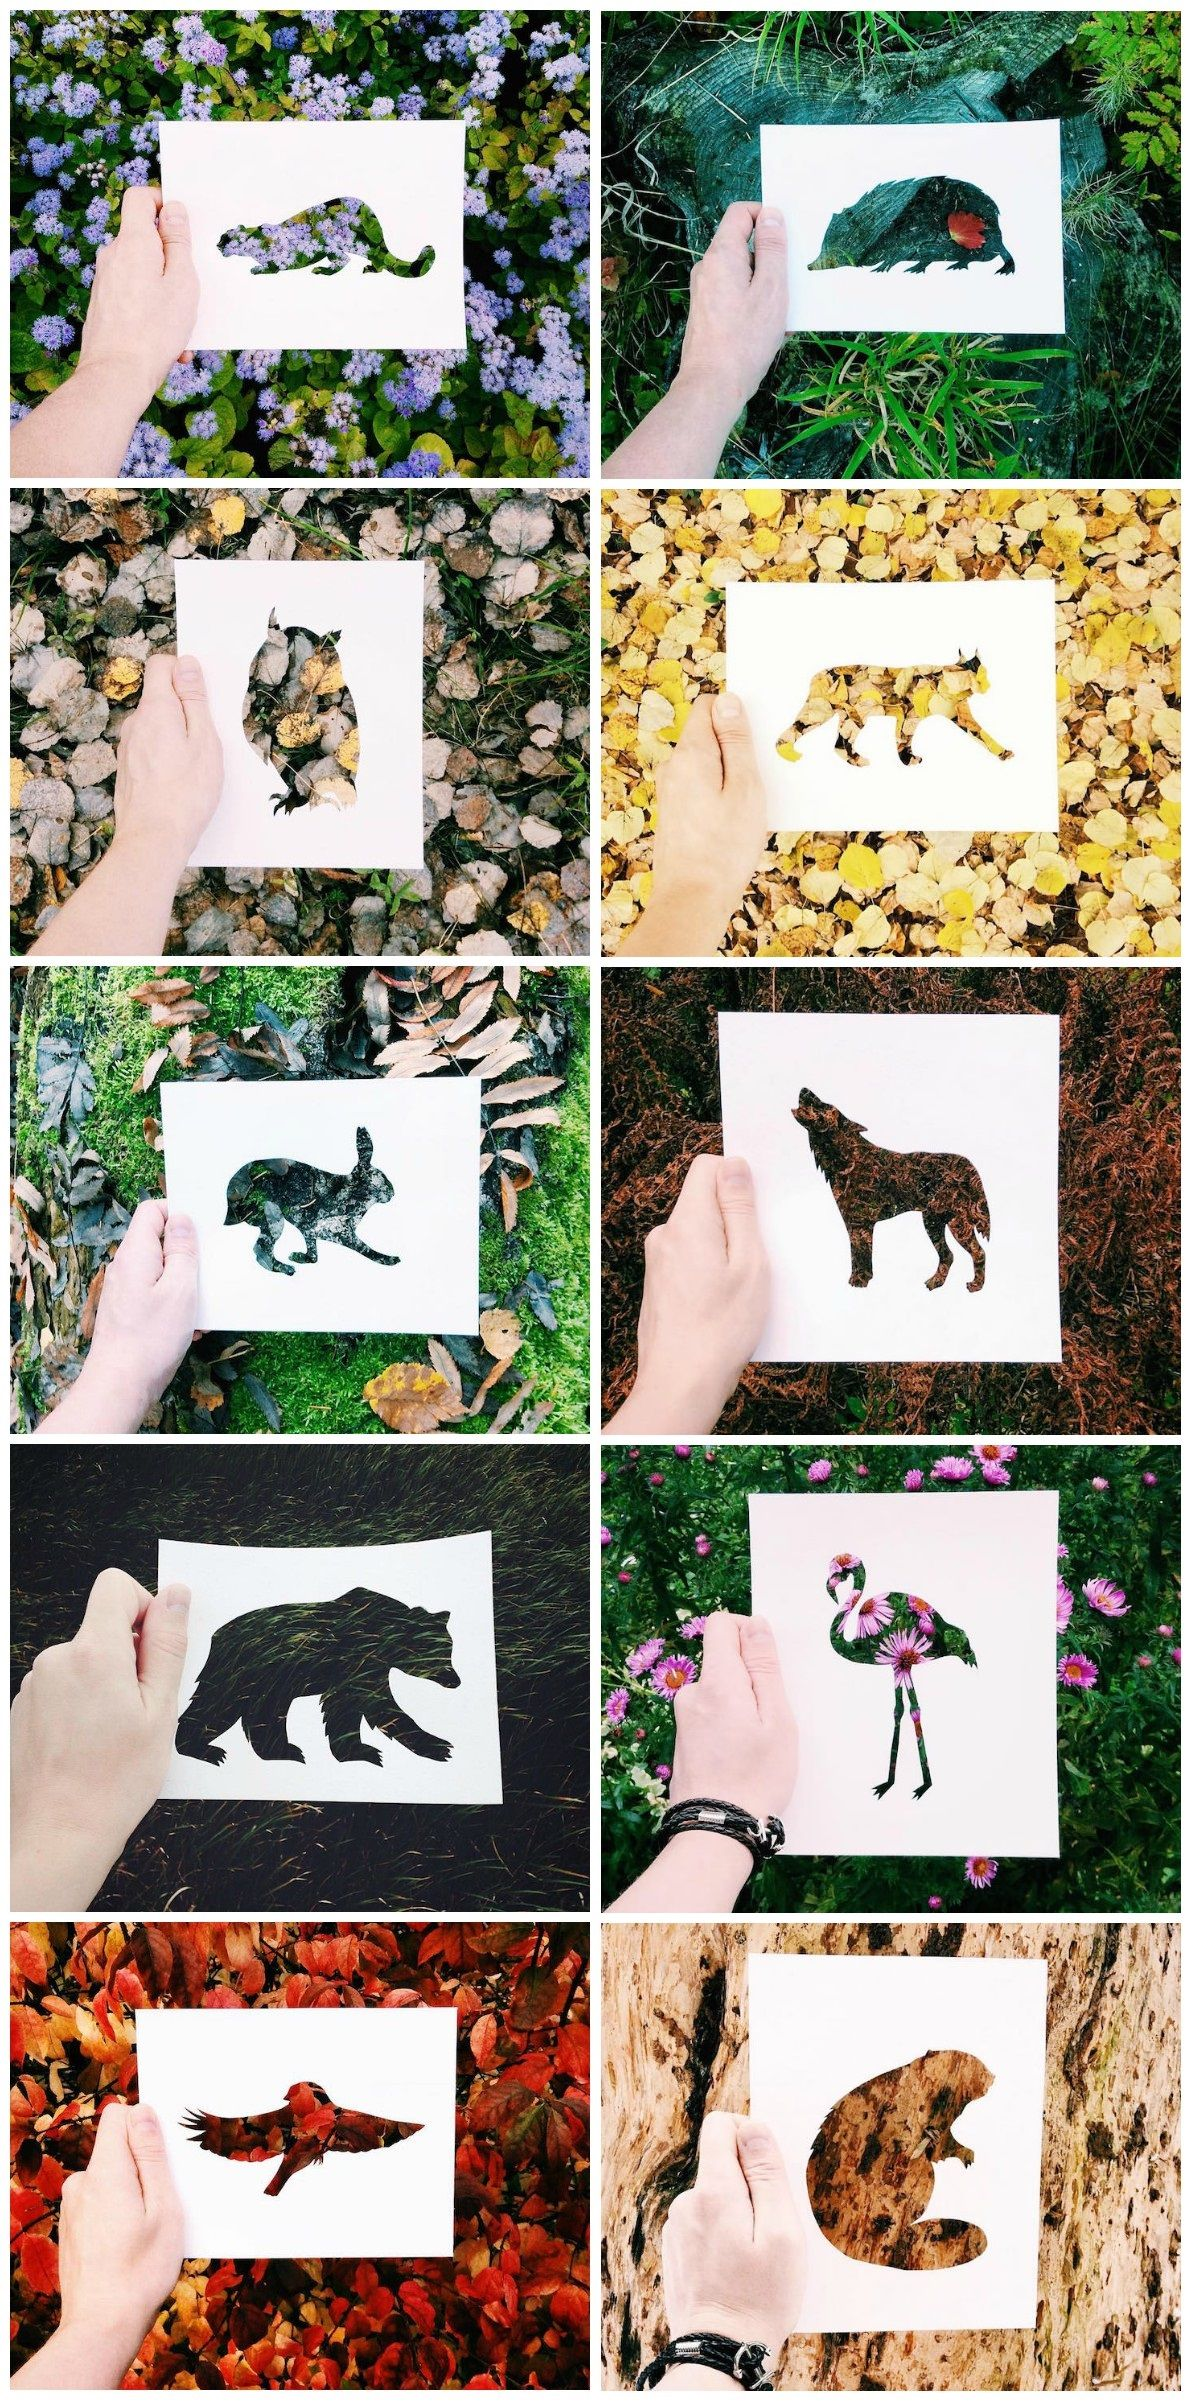 Color and art - Artist Uses Natural Landscapes To Color In Cutout Silhouettes Of Animals